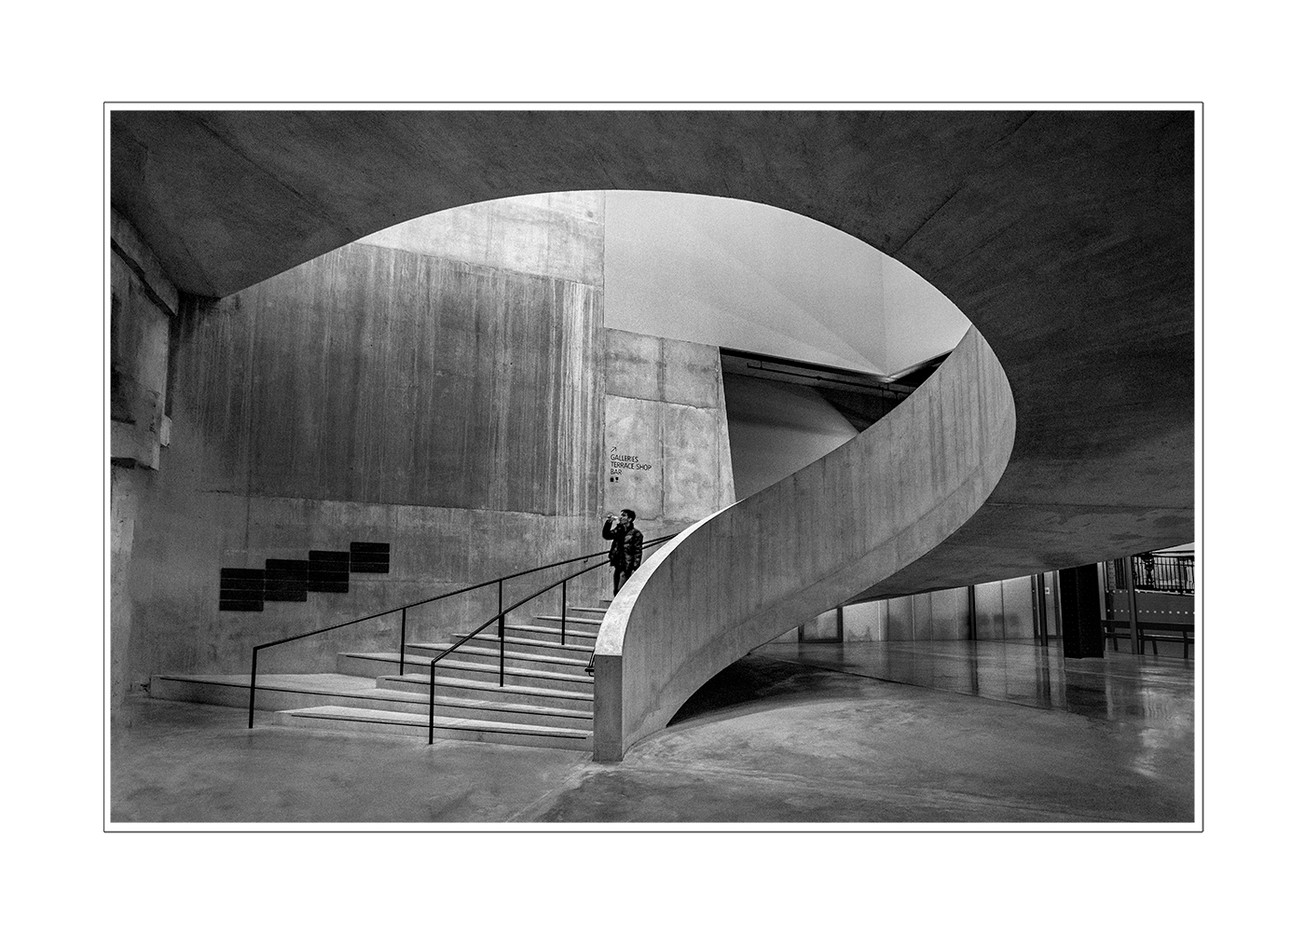 18 DOWN WHERE THE TATE SHOWS ITS ORIGINS by Philip Easom